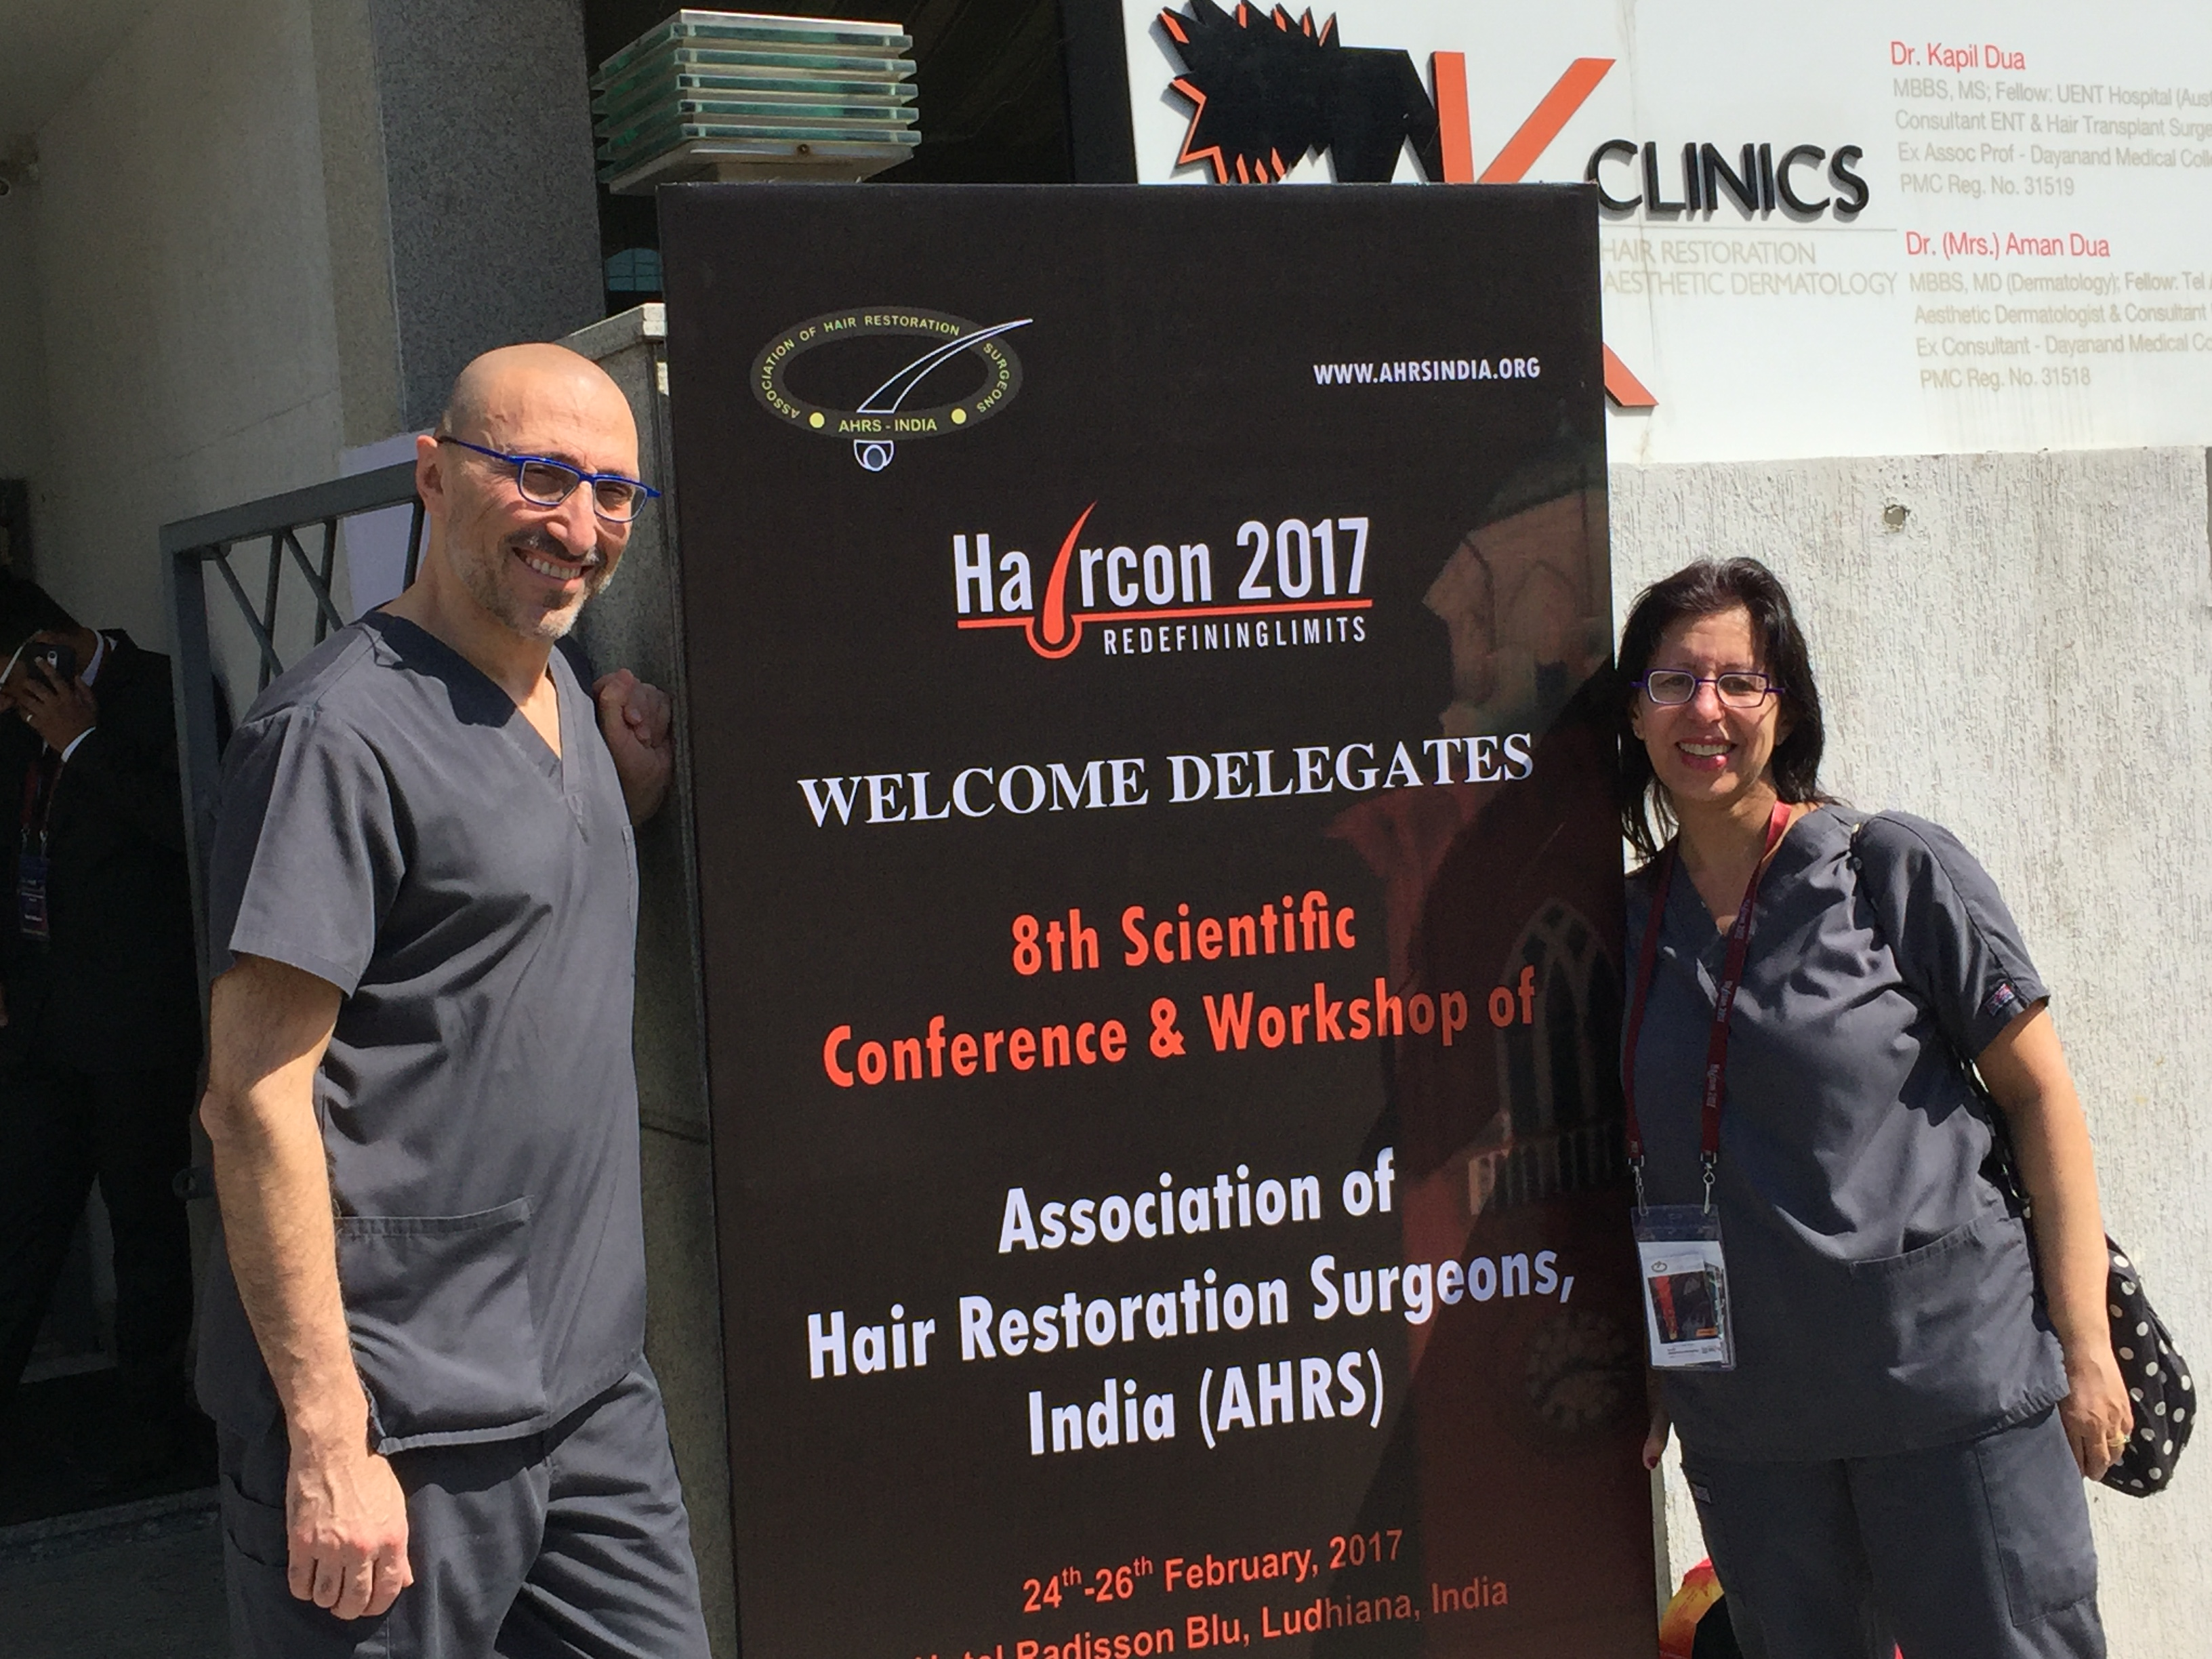 Drs Farjo Invited Guests At Annual India Hair Transplant Congress